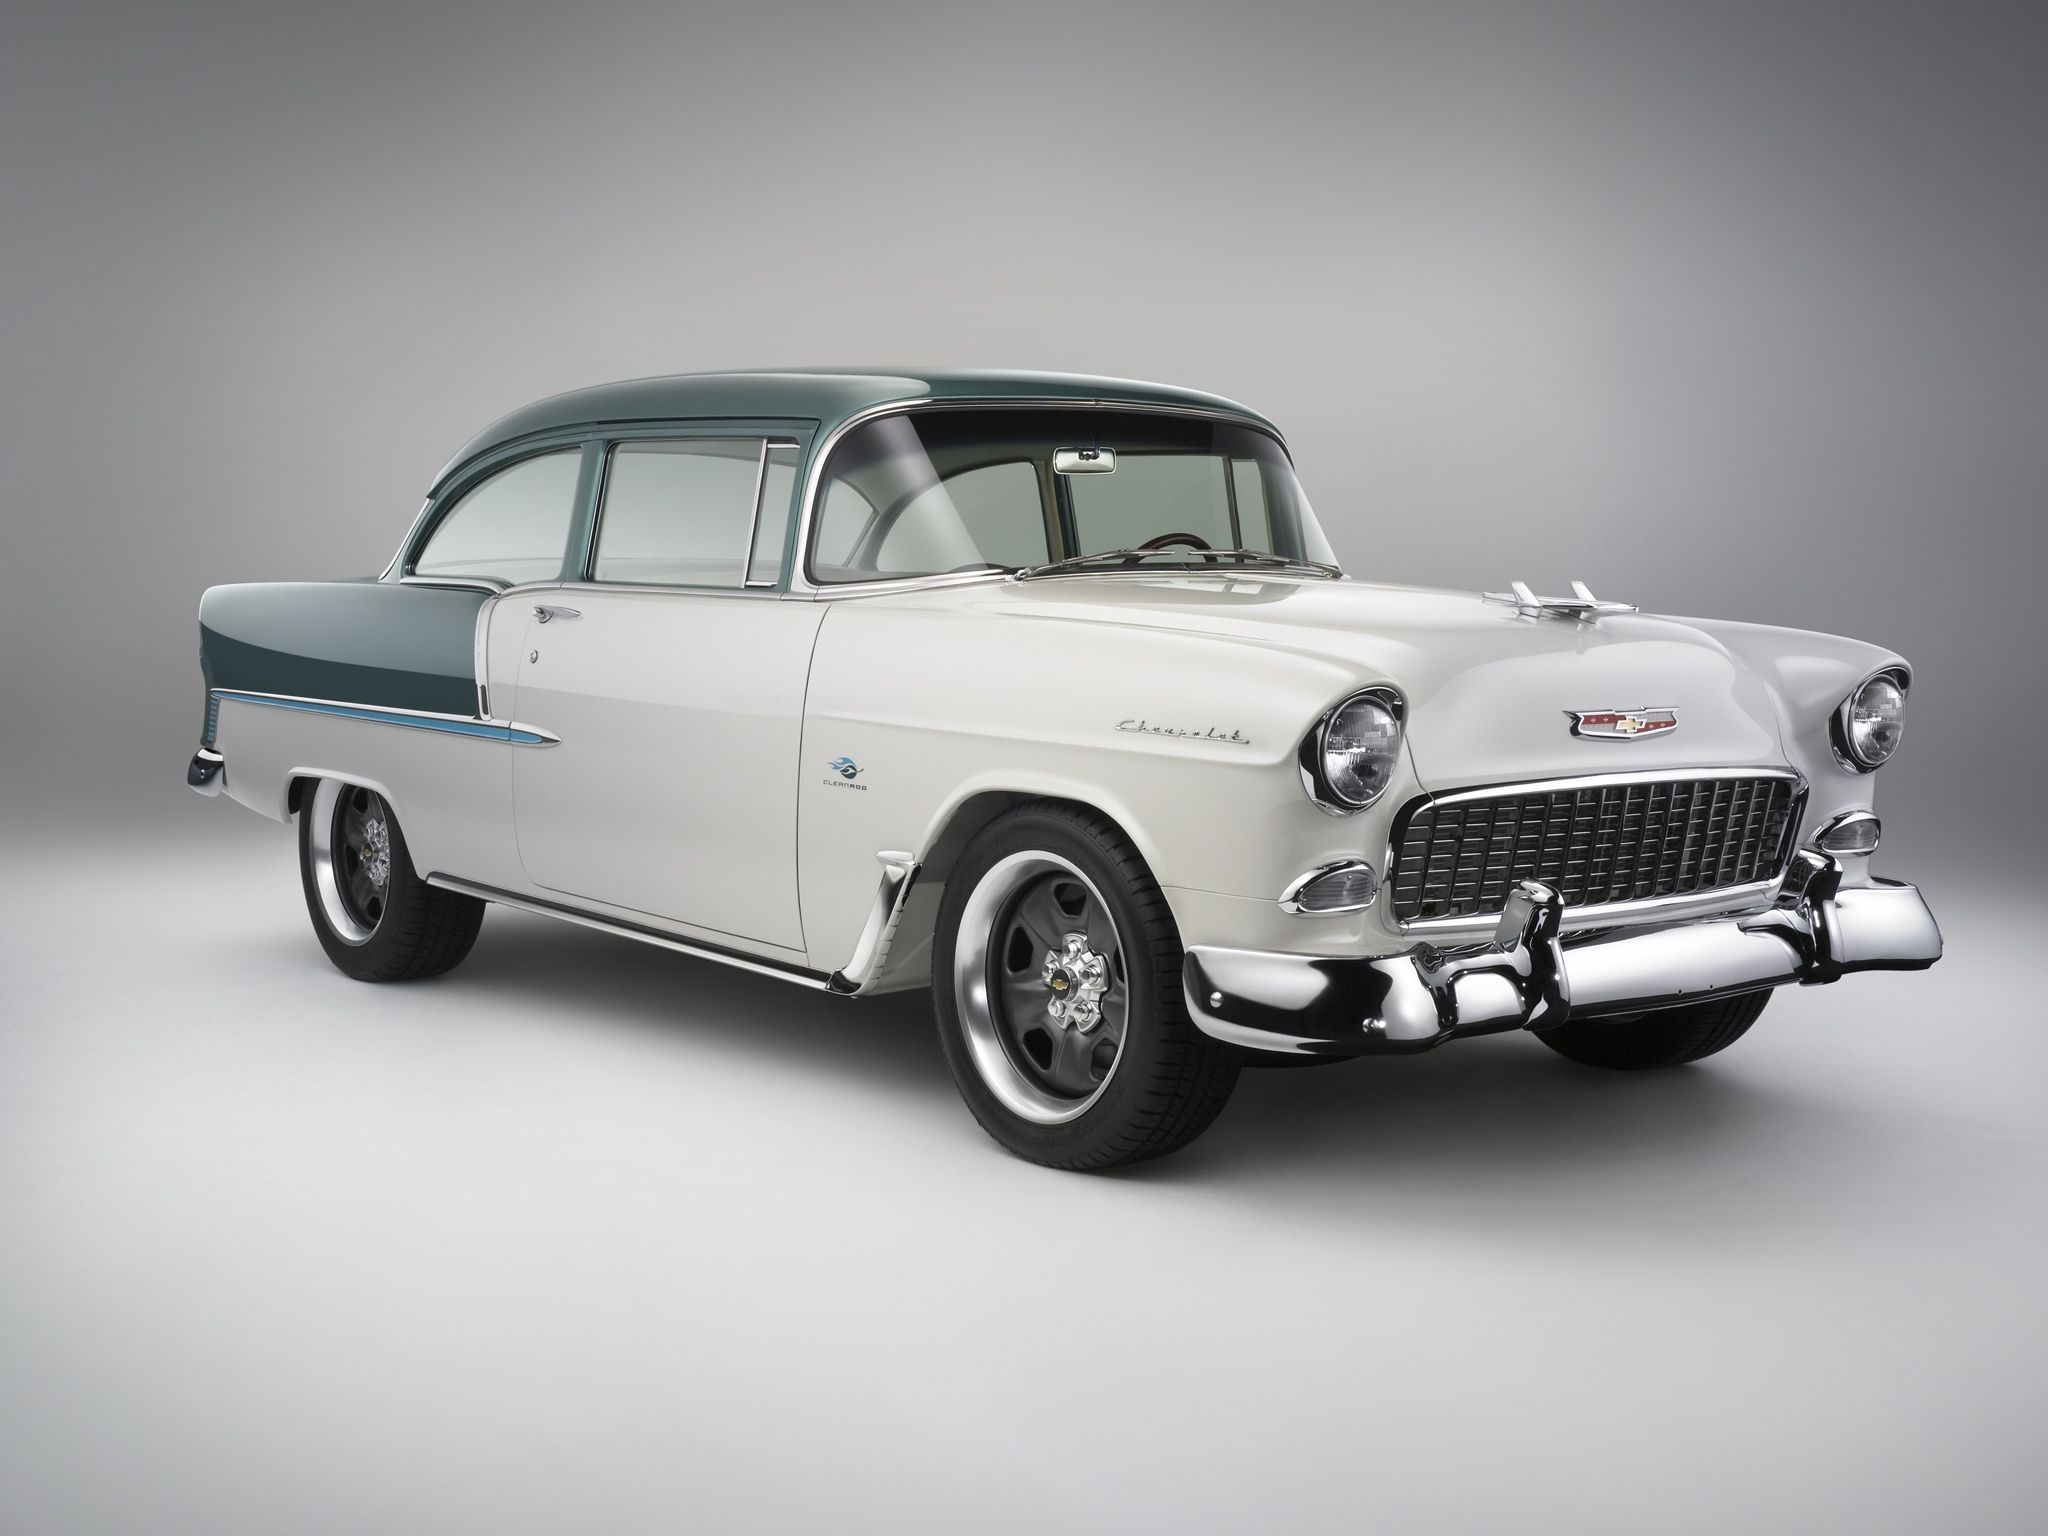 1955 Chevrolet Bel Air coupe retro muscle hot rod rods wallpaper 2048x1536